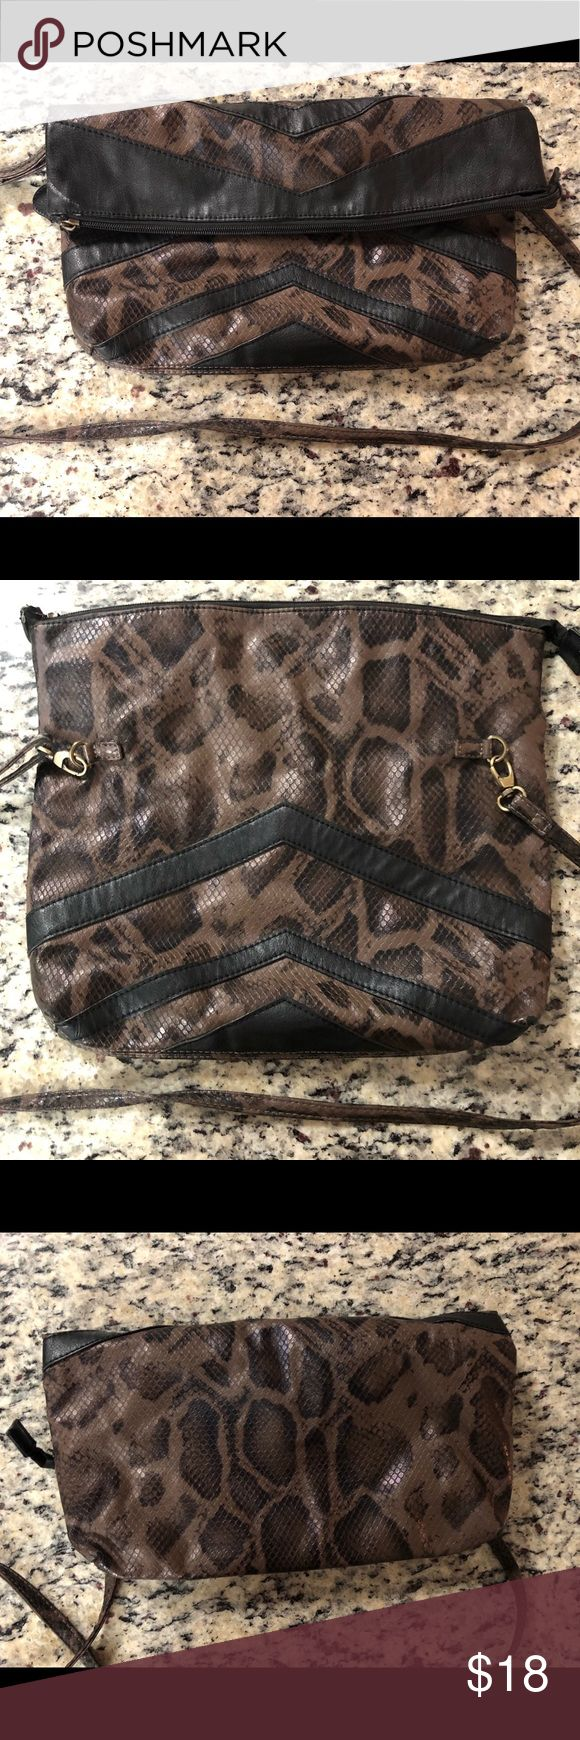 Animal print clutch Animal print clutch with removable cross-body strap! Bags Clutches & Wristlets